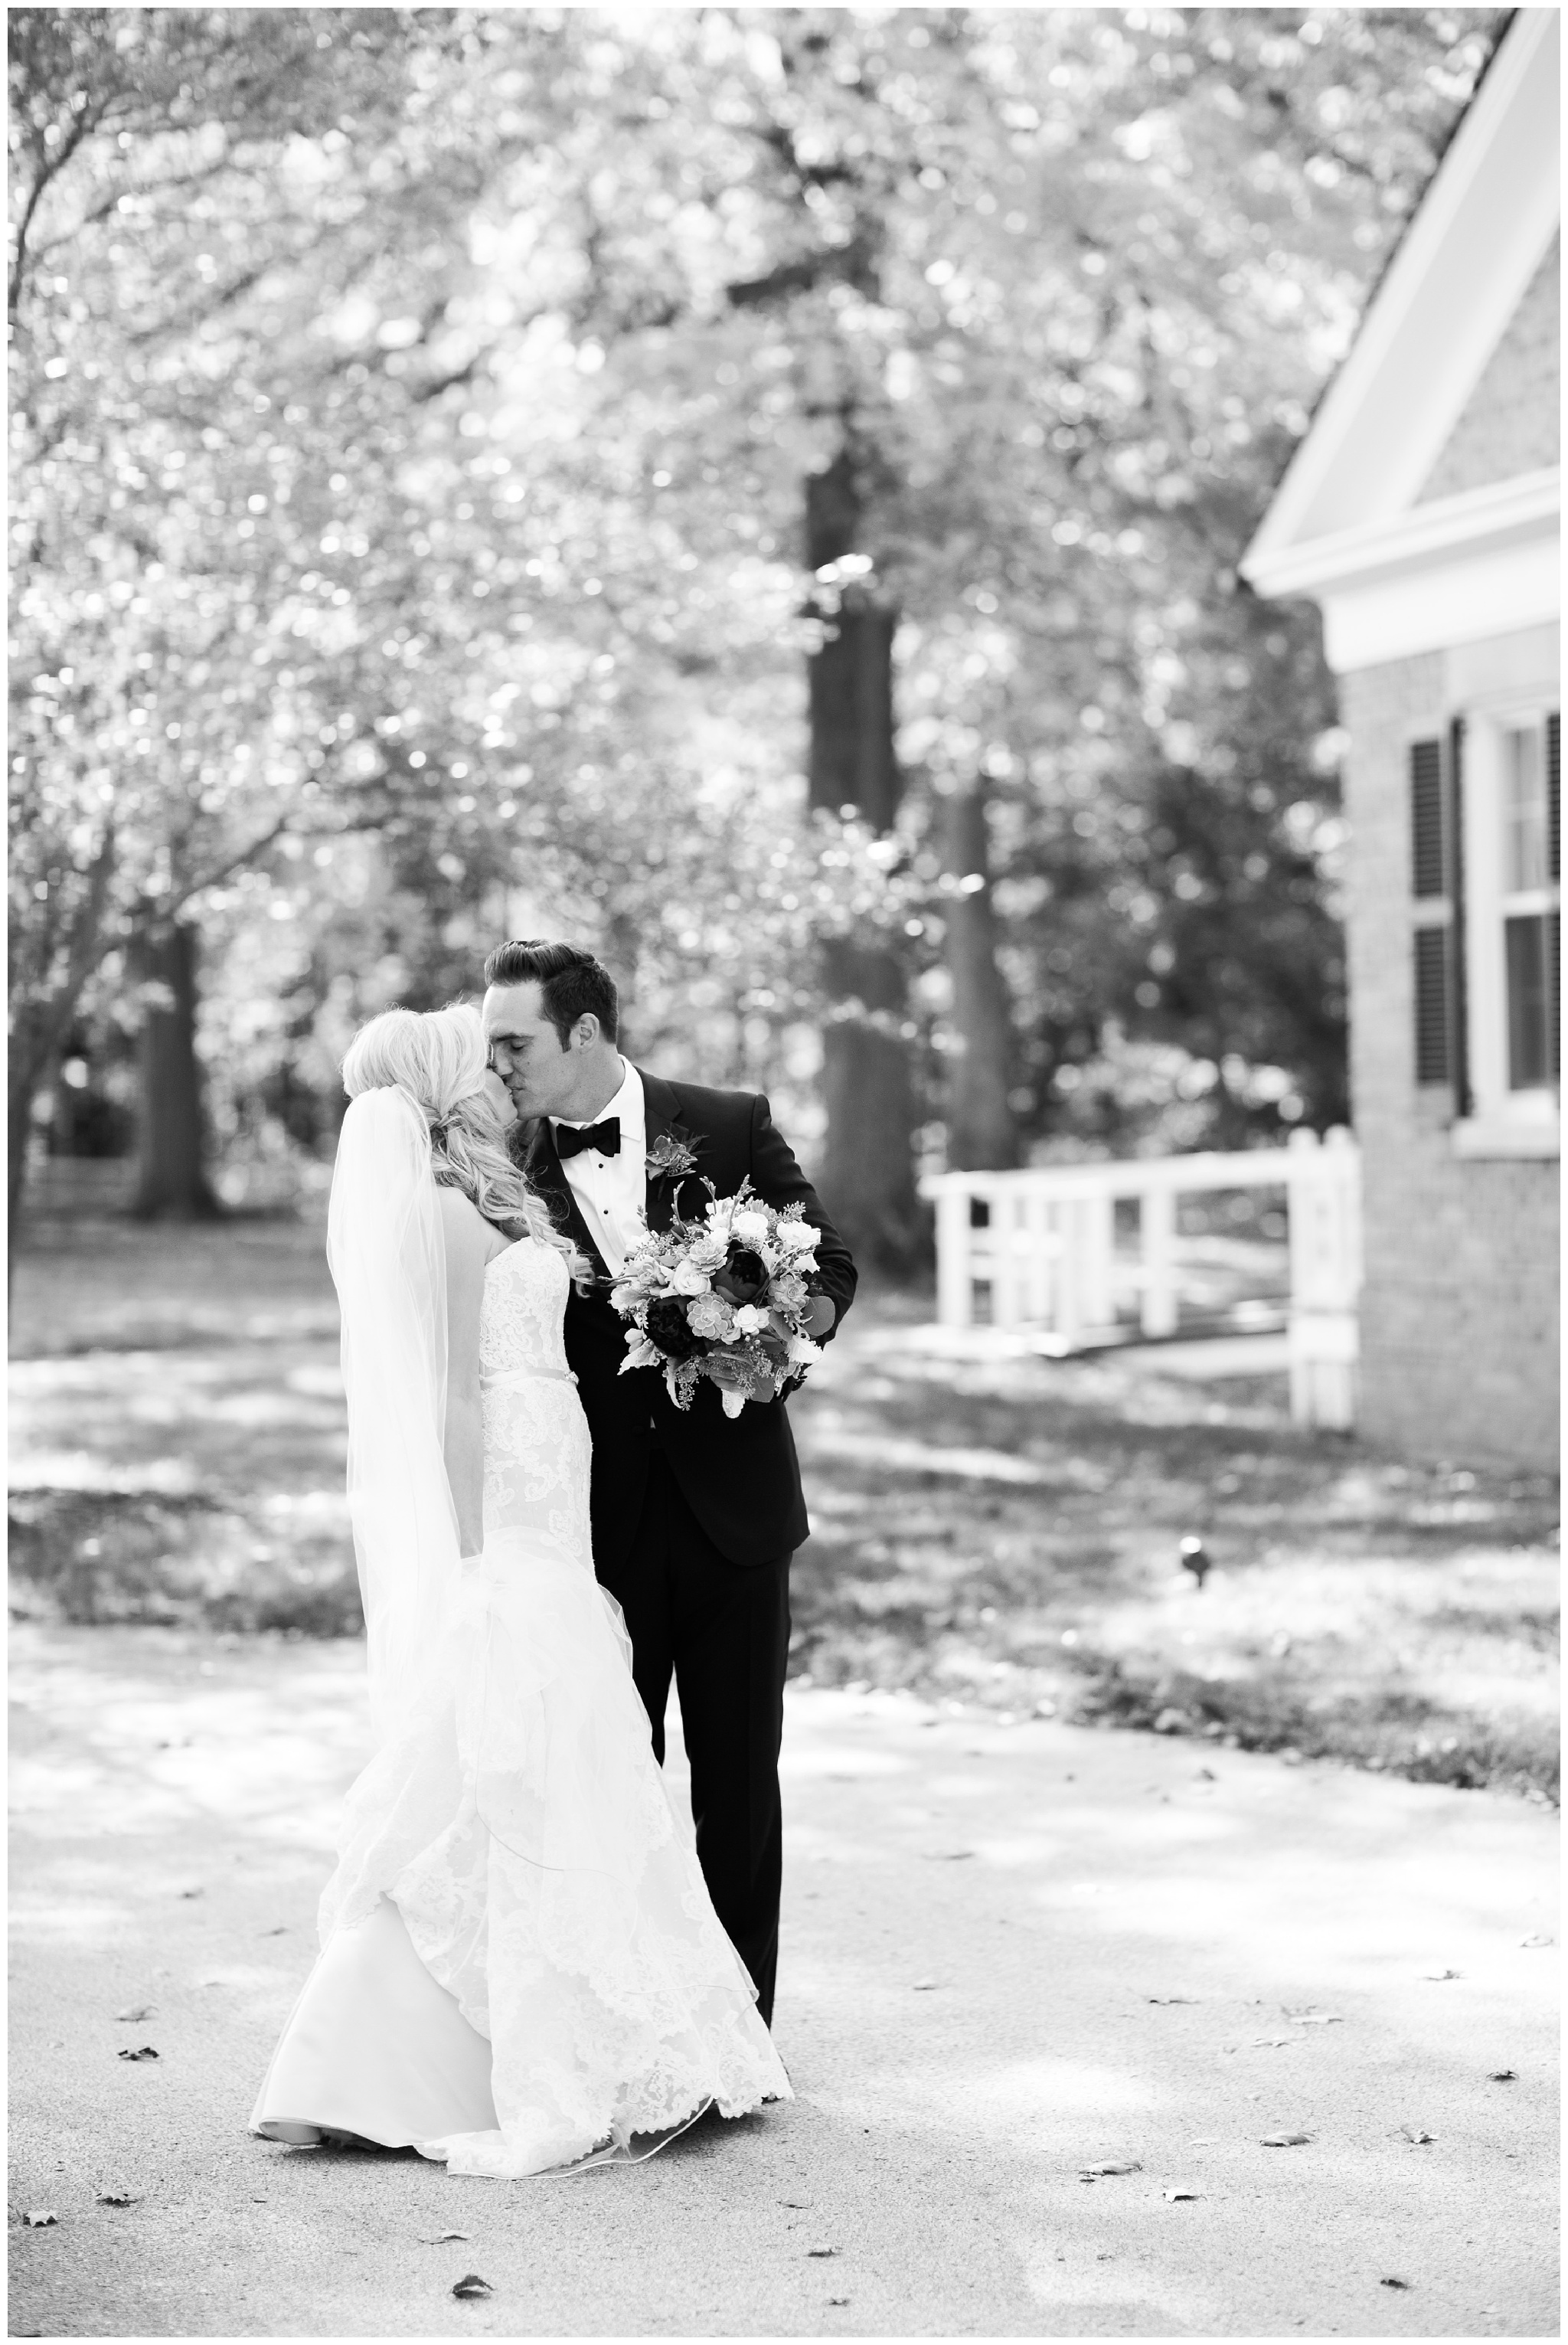 RebeccaHaleyPhotography_BarringtonPhotographer_ChicagoPhotographer_ChicagoWedding_0046.jpg